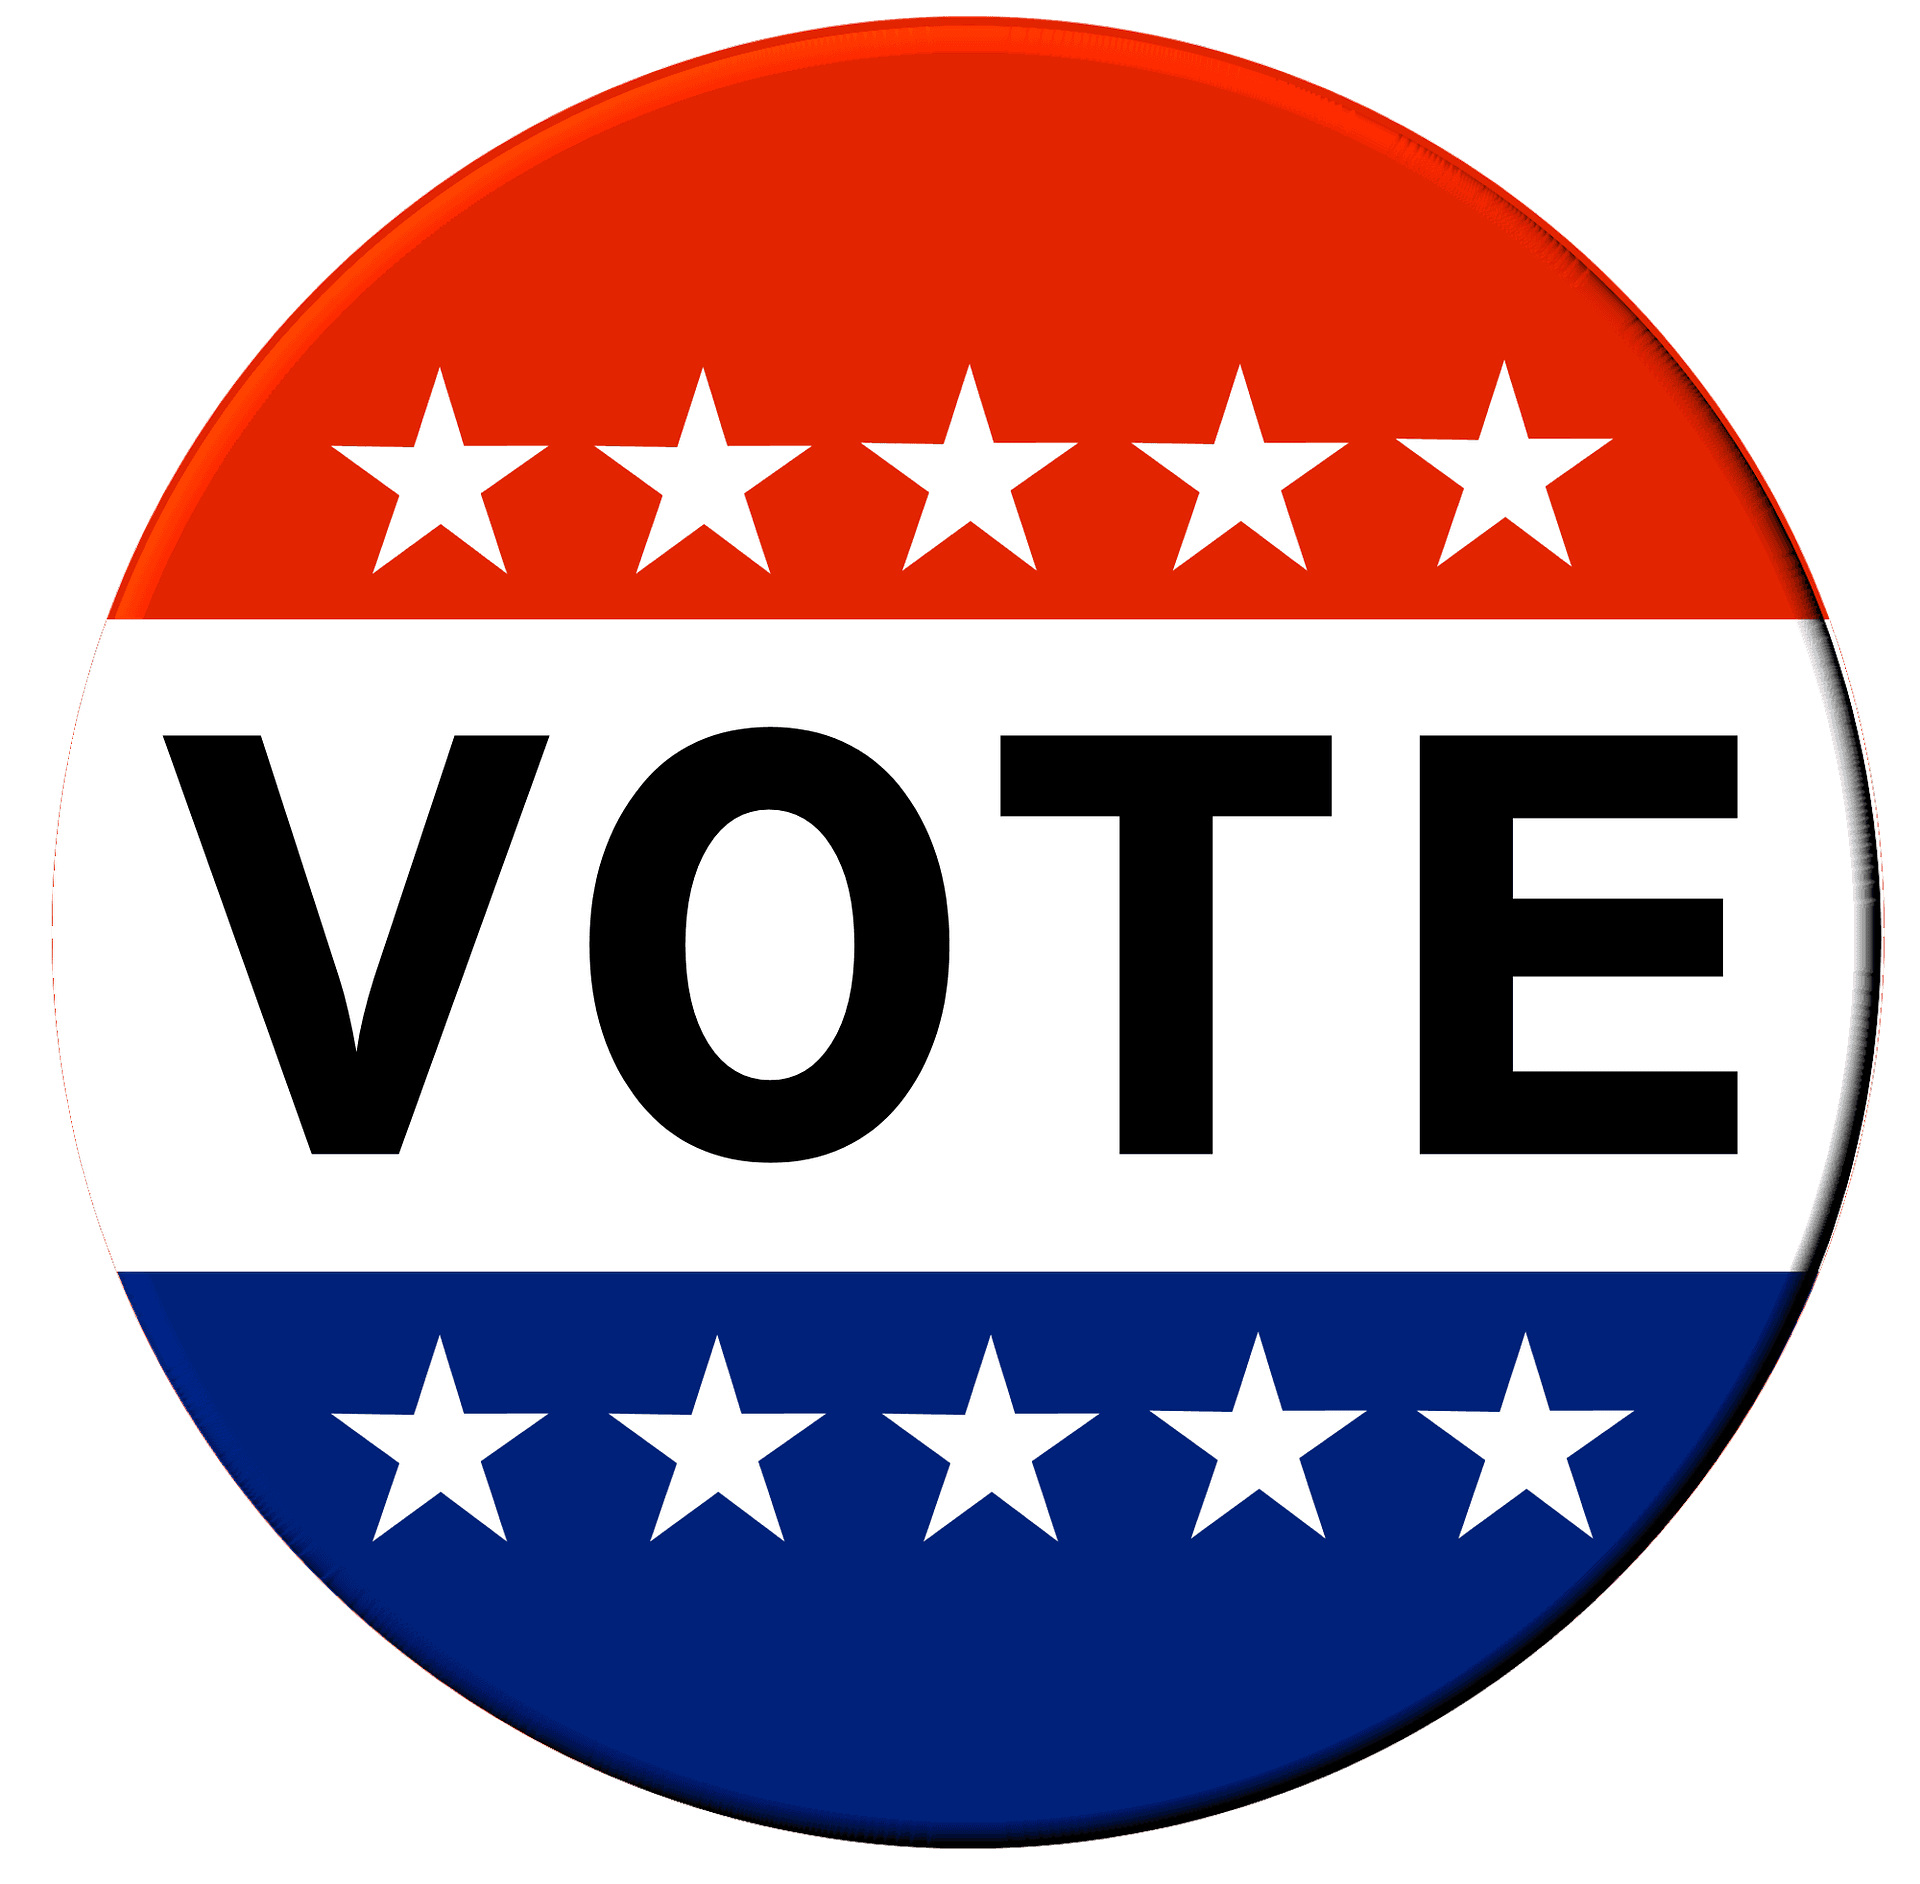 Vote Sticker Image